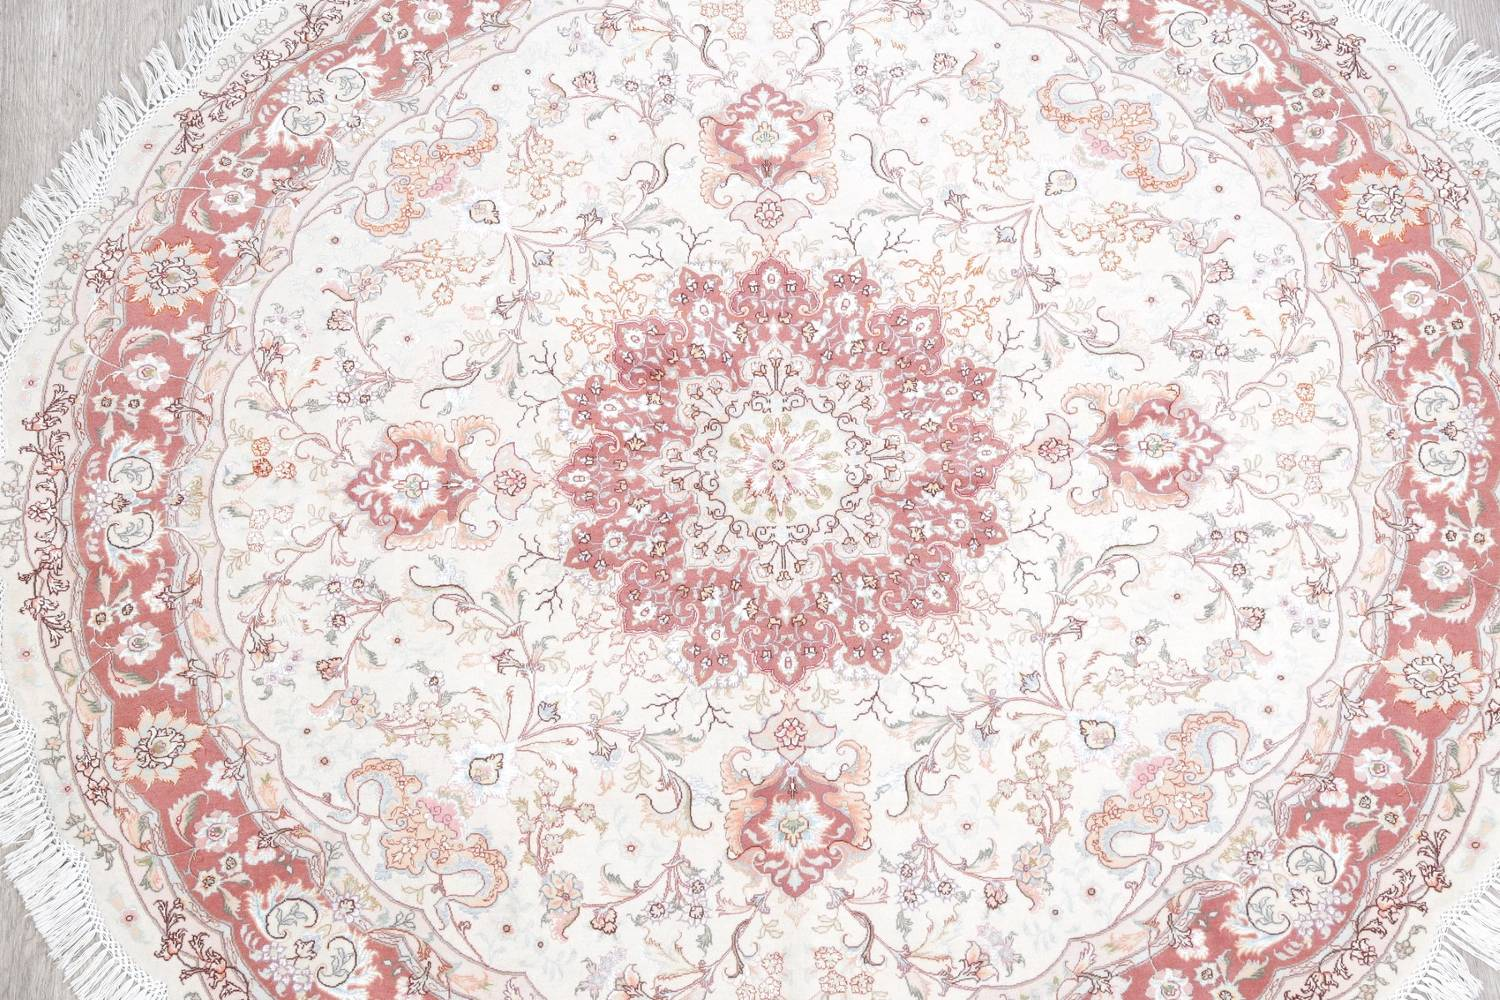 Vegetable Dye Floral Ivory Tabriz Persian Hand-Knotted Round Rug 7x7 image 3